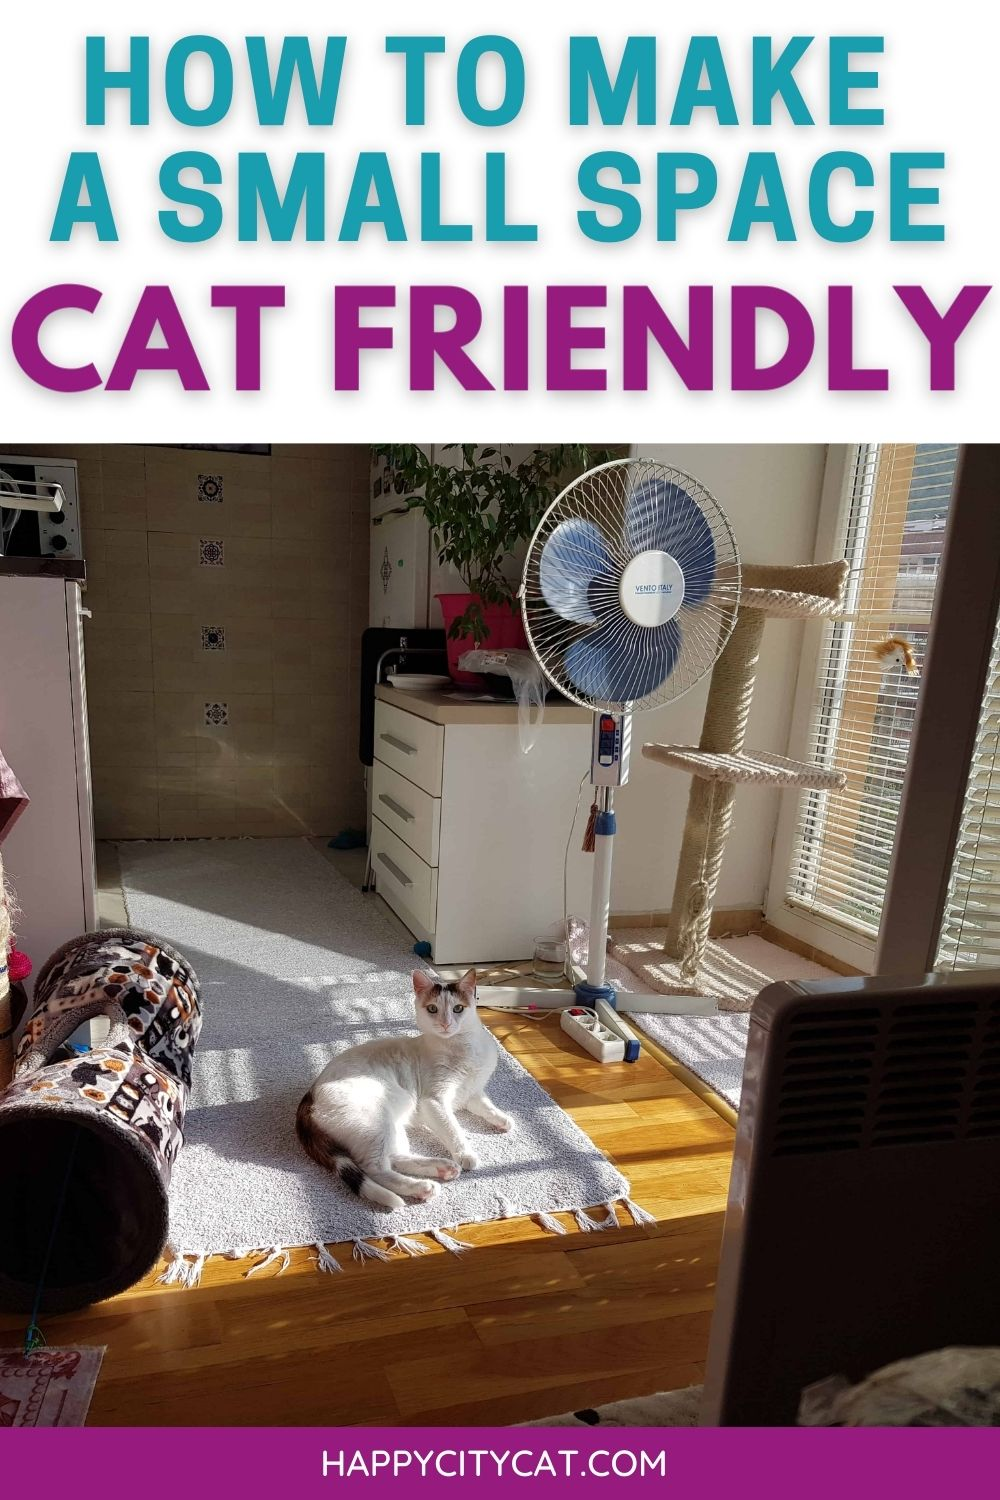 how to make a small space cat-friendly